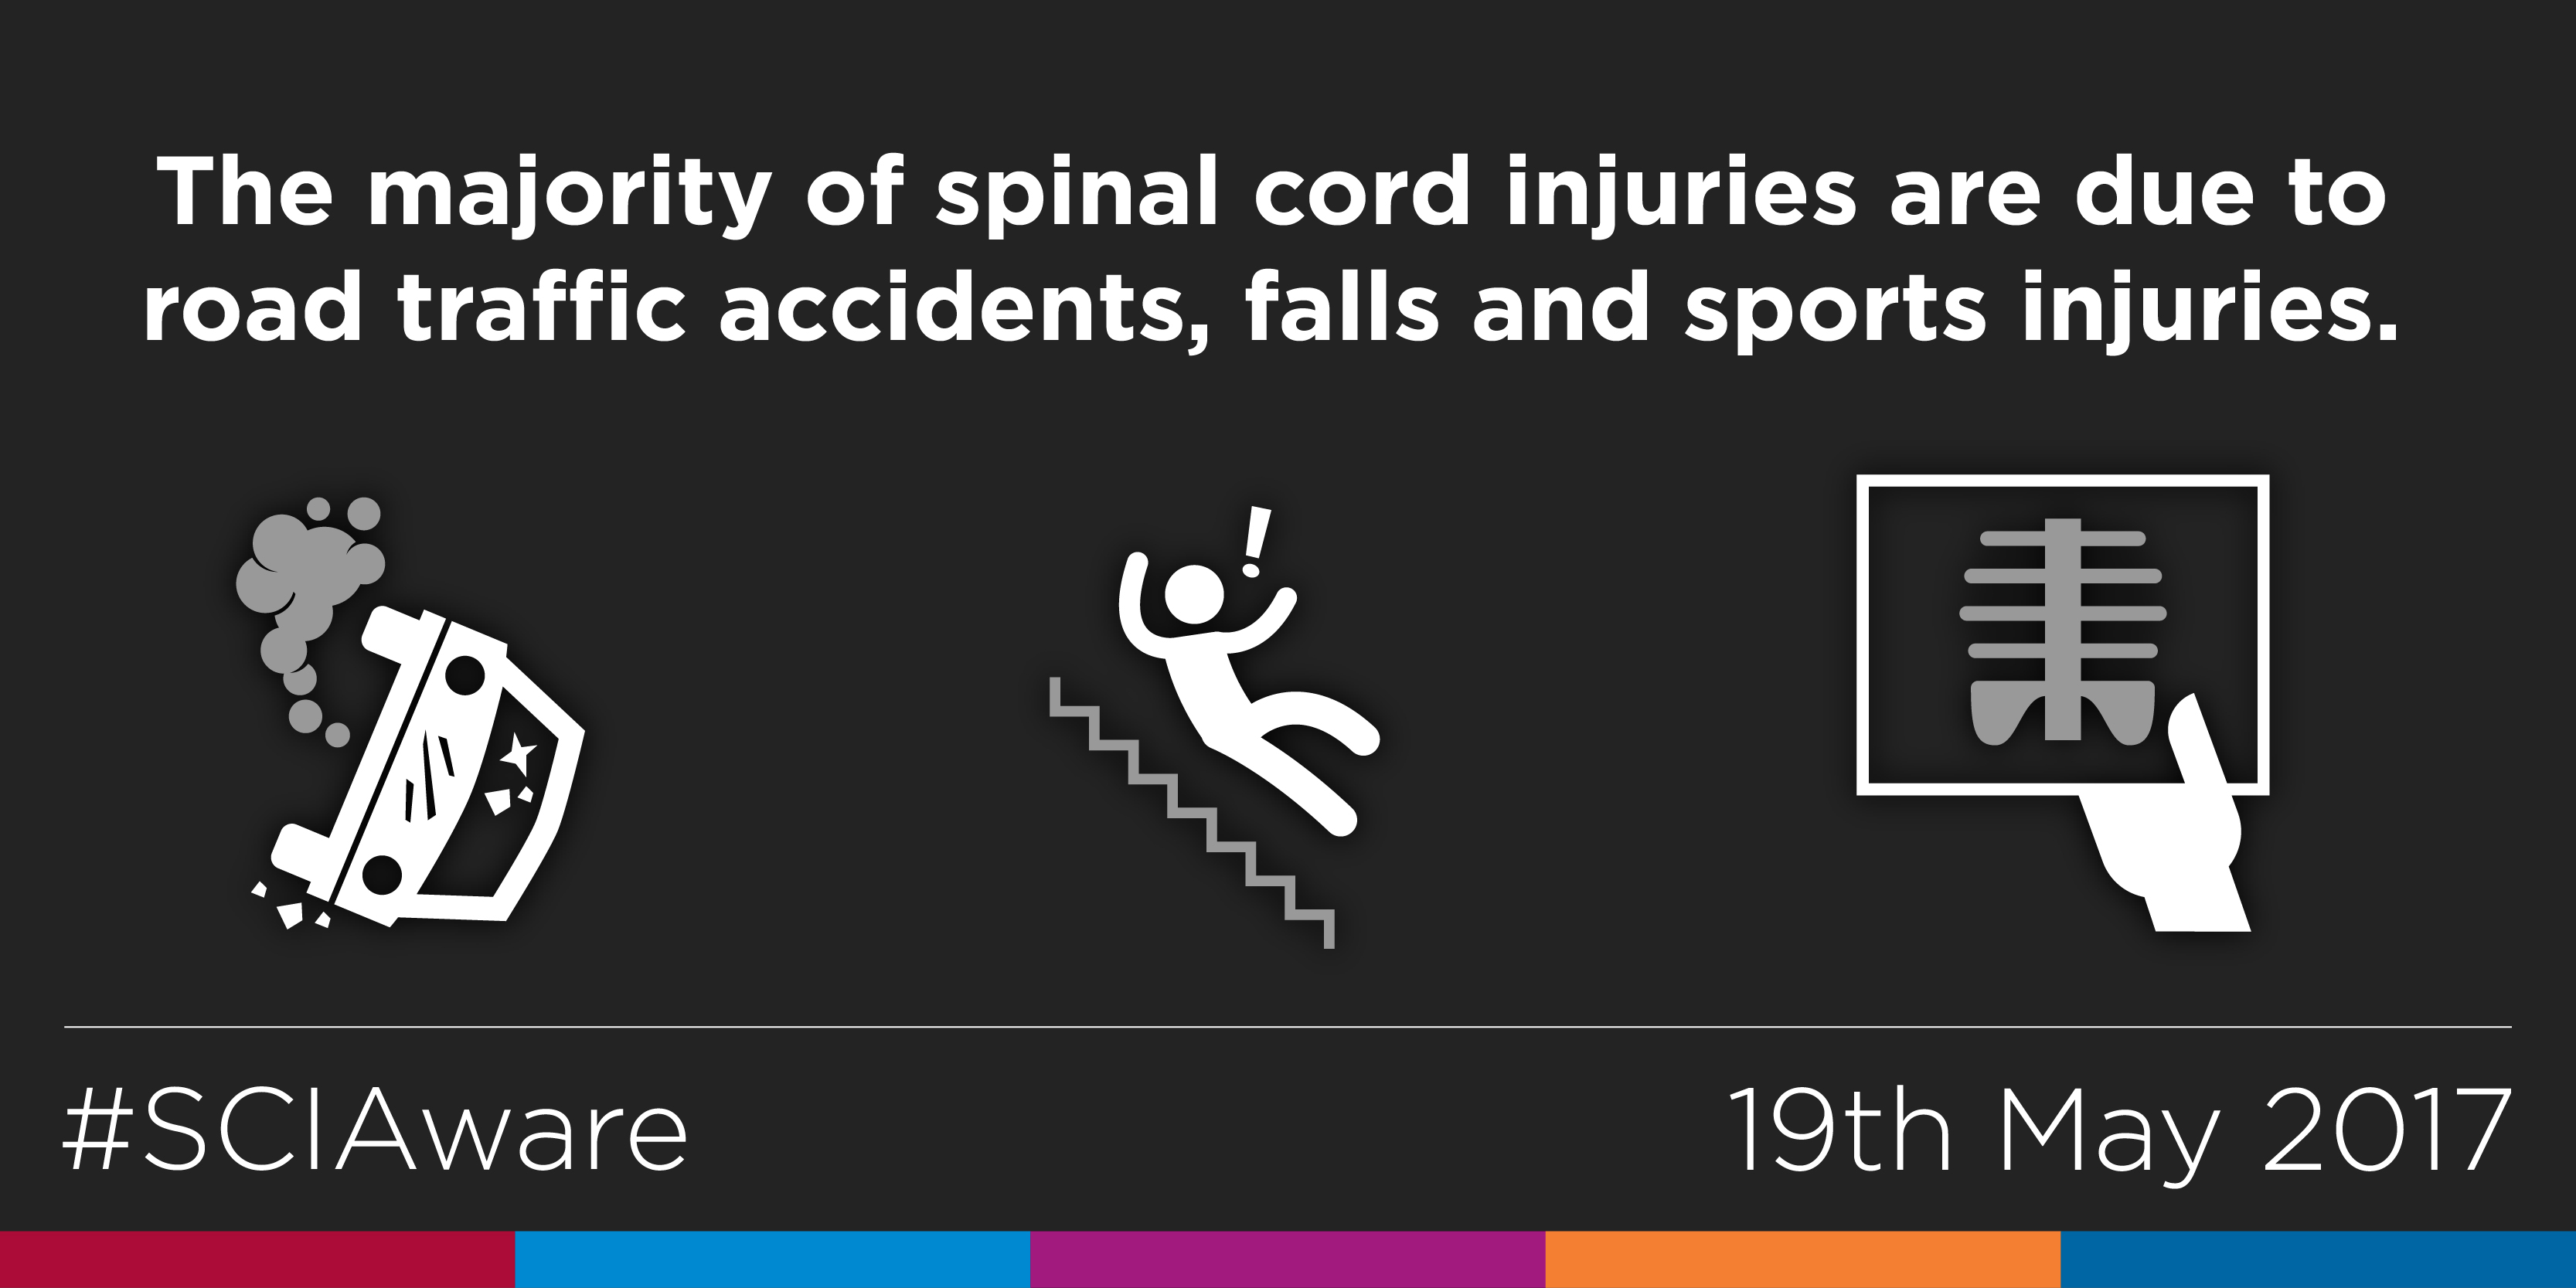 Causes of spinal cord injury